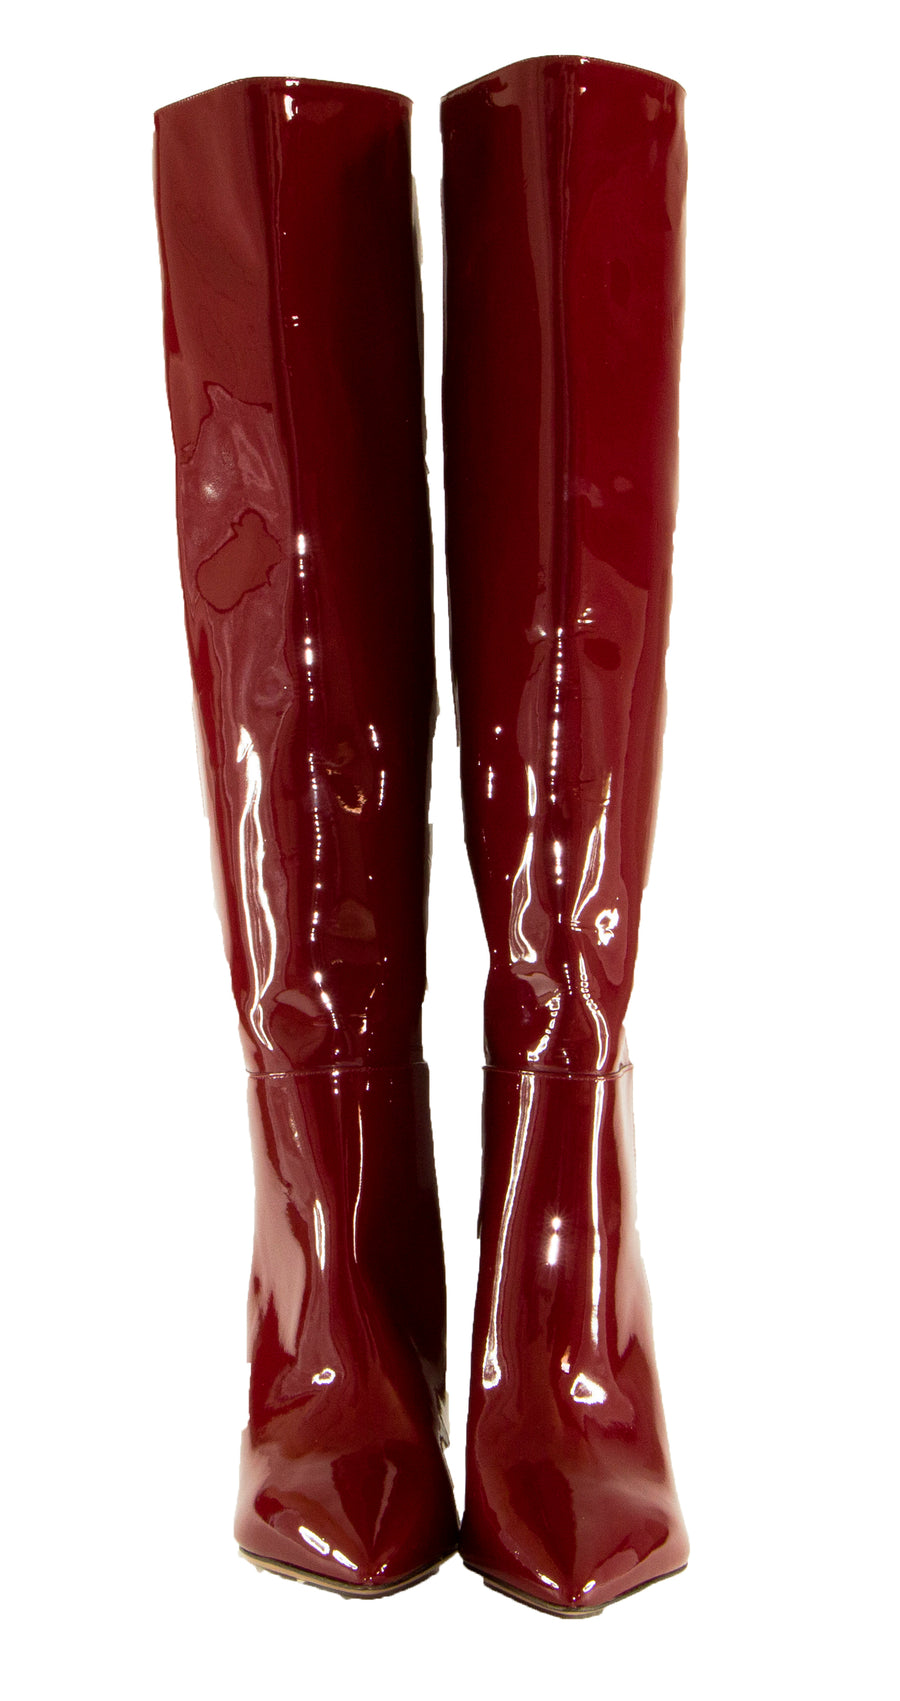 Valentino Red Patent Leather Knee High Boots